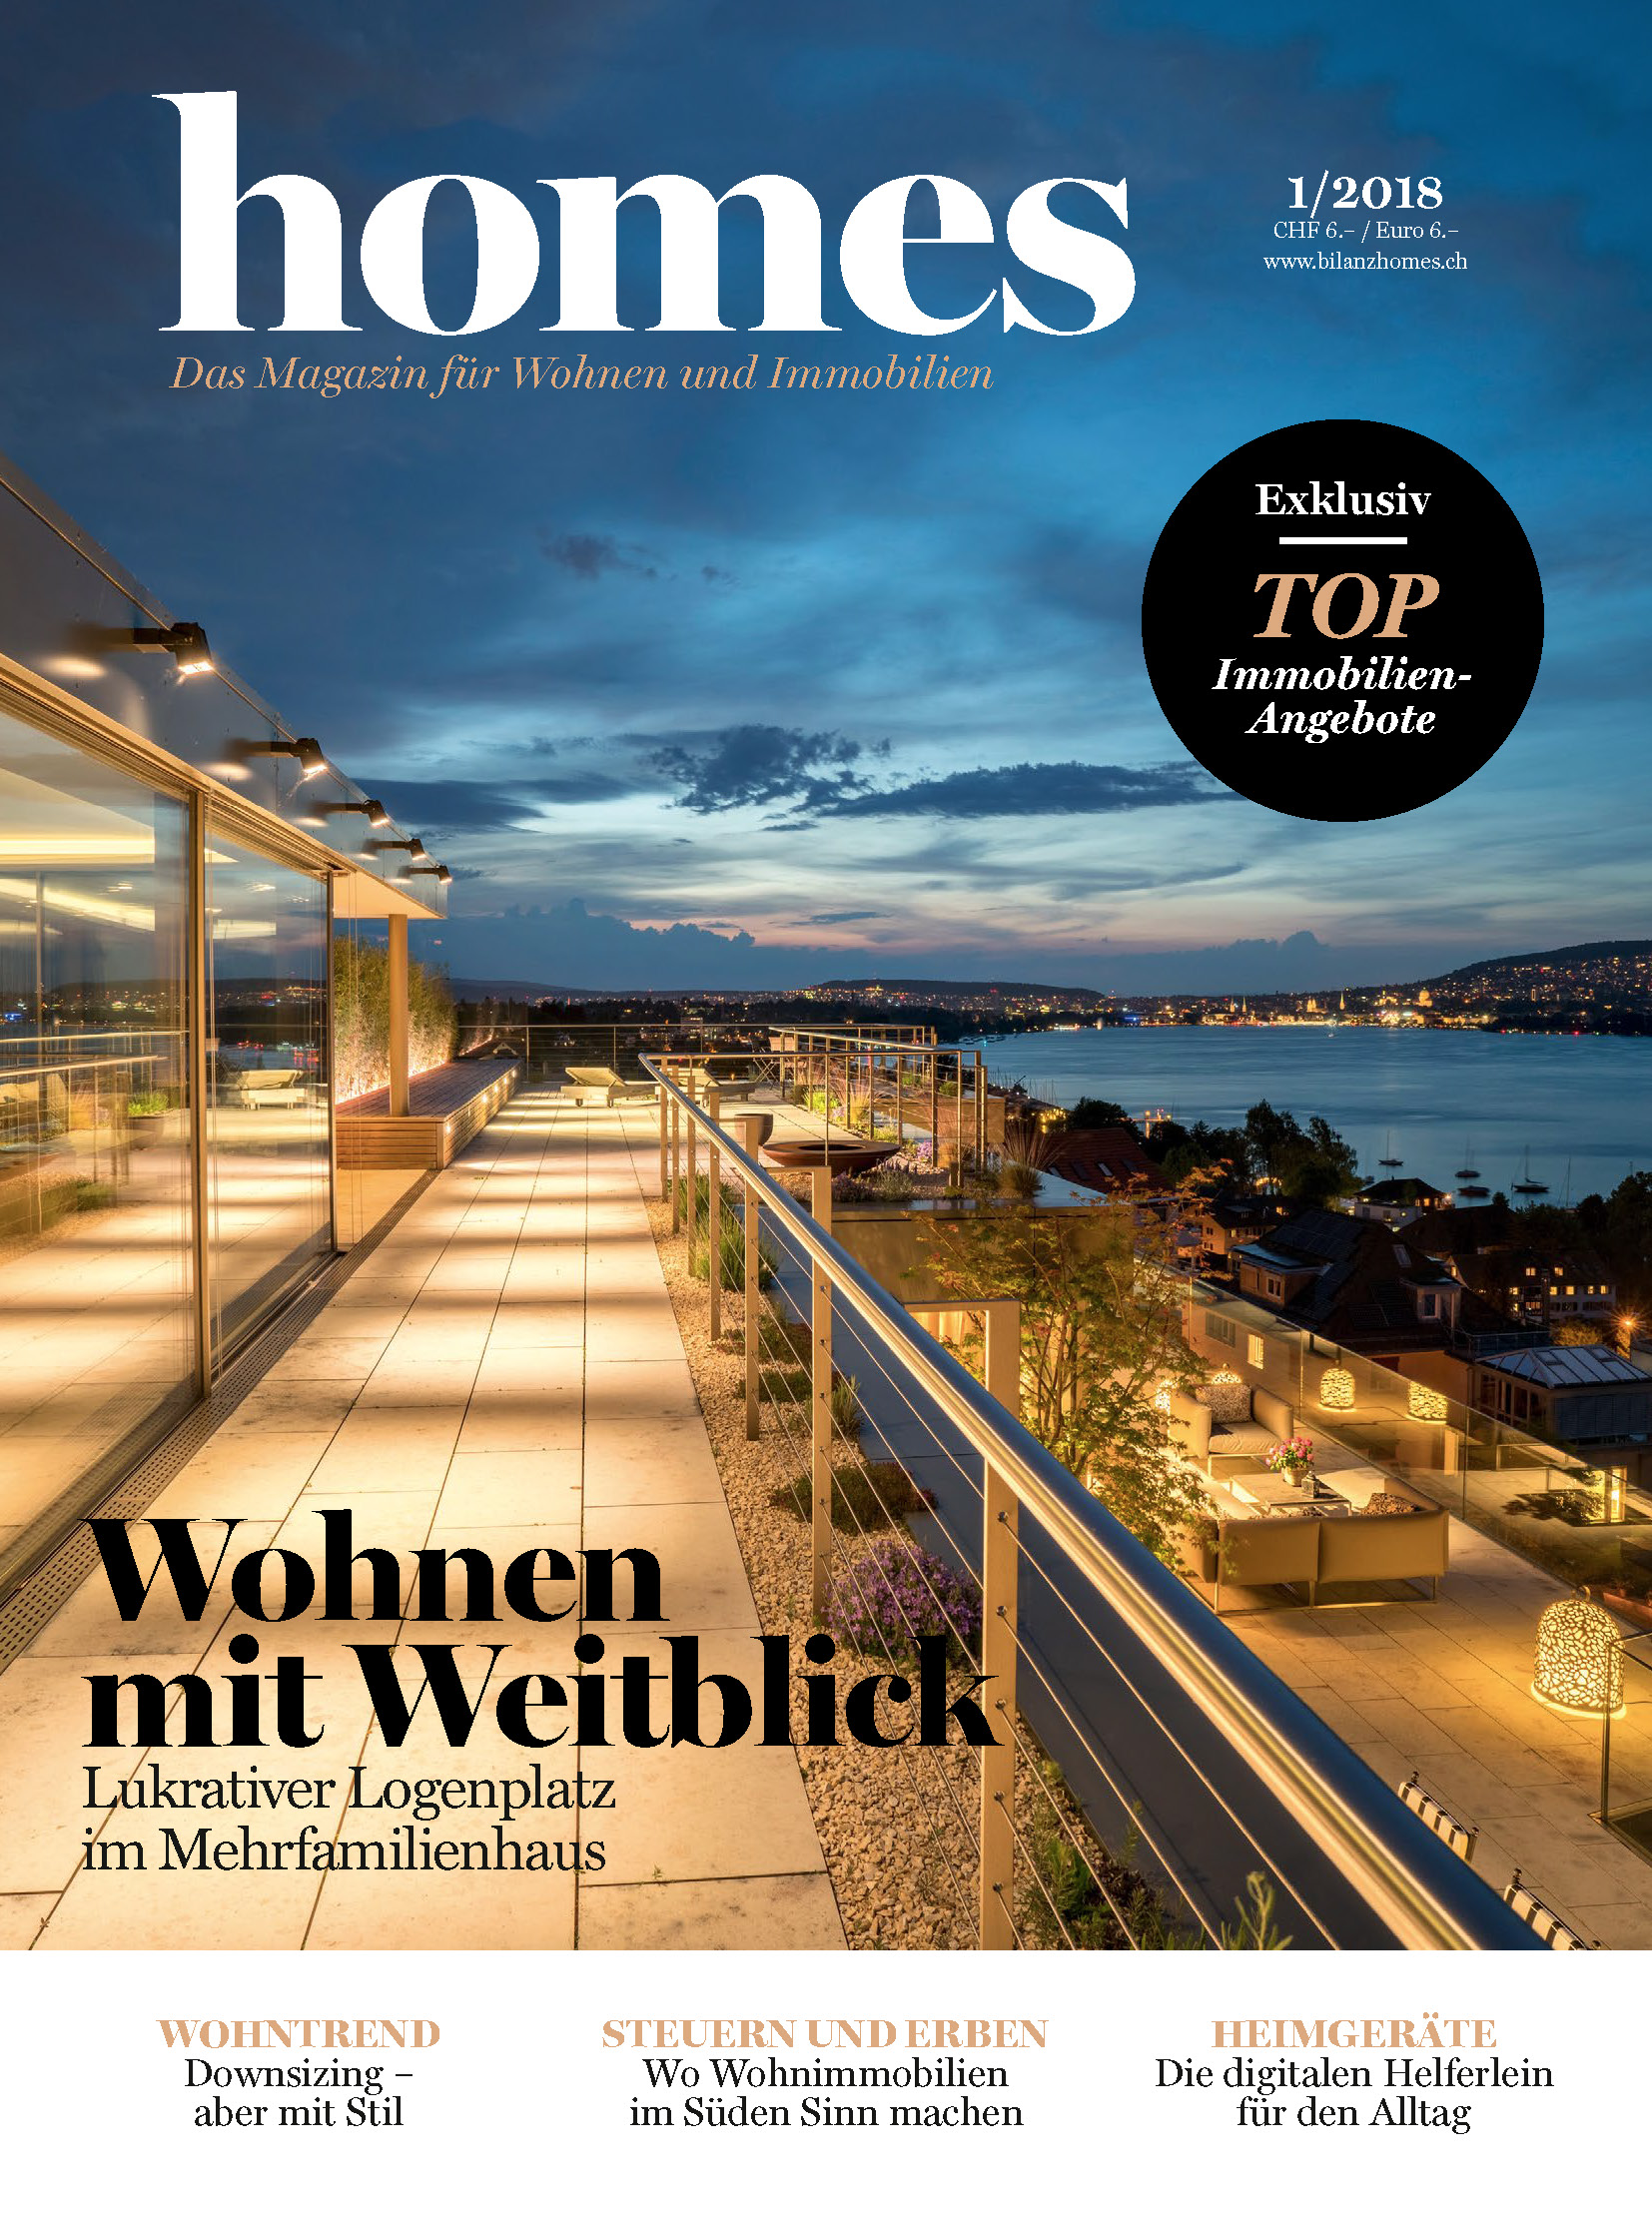 homes 1/2018